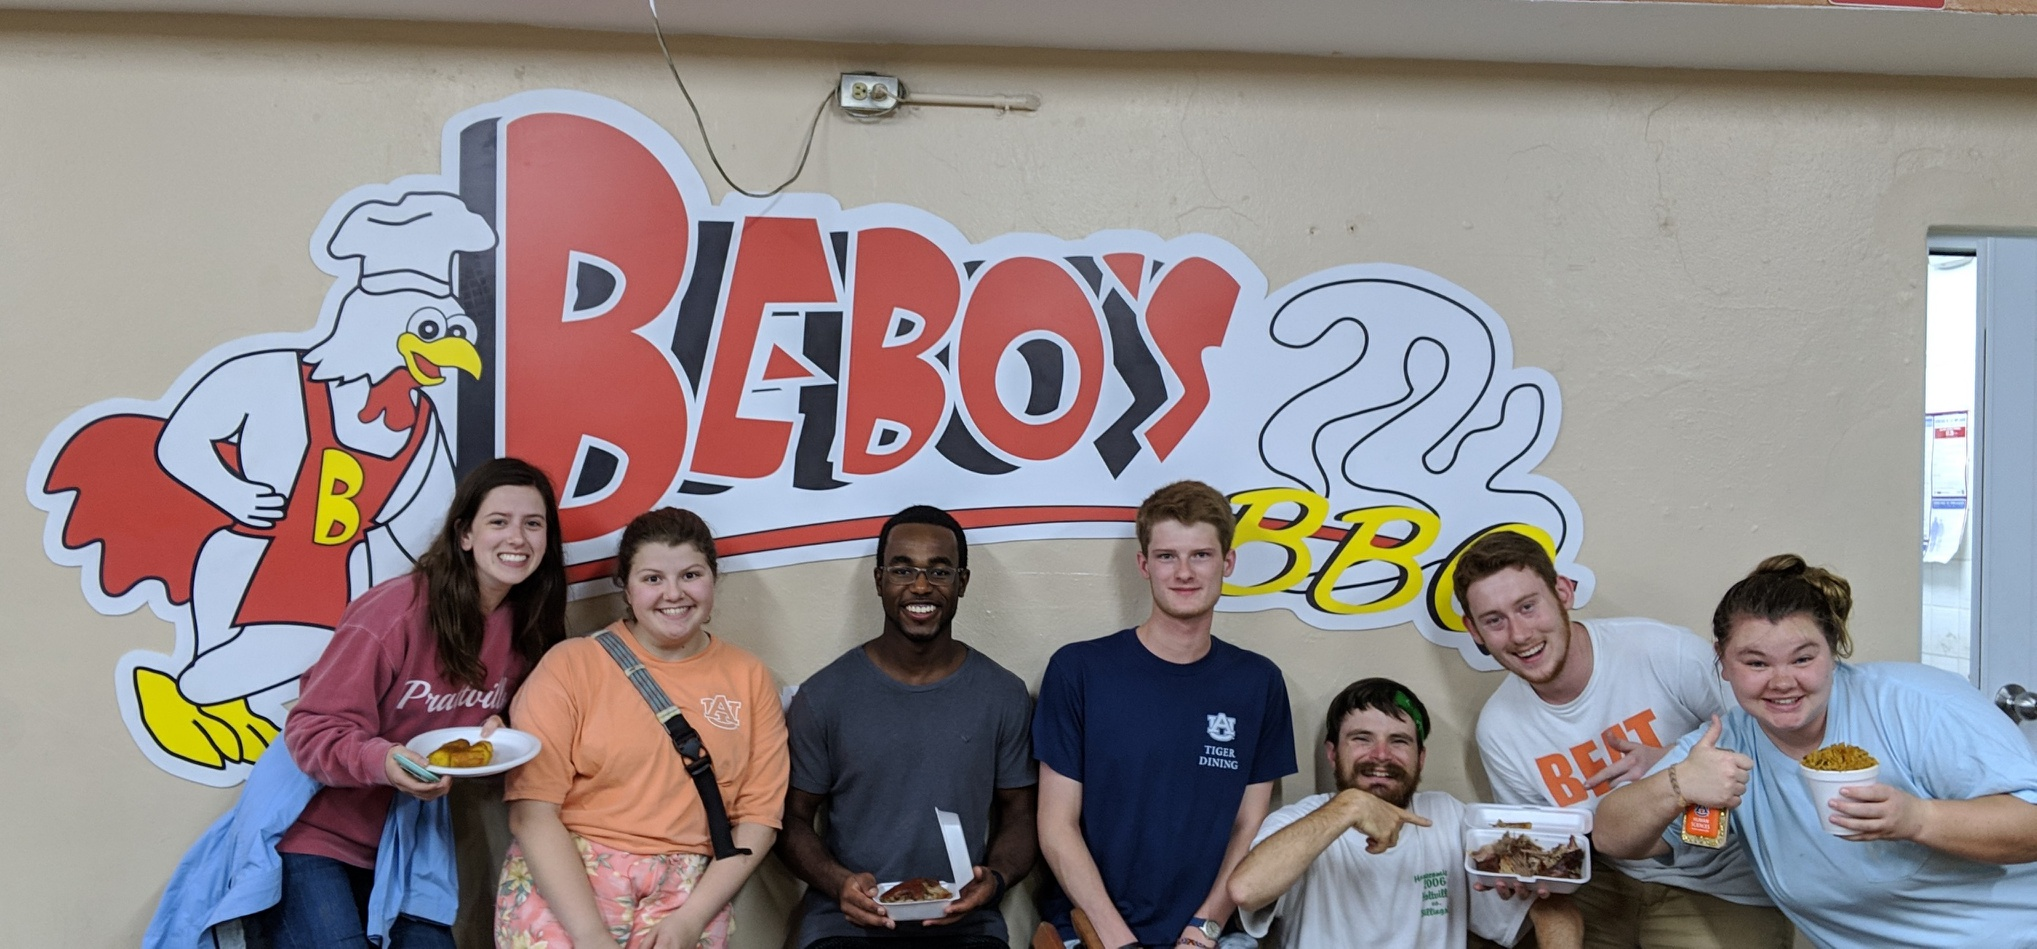 from left to right: Tatum Connell, Taylor Vaughan, AJ Stanley, Richard White, JT Mercer, Ben Gourley, Becca Lamb at Bebos BBQ